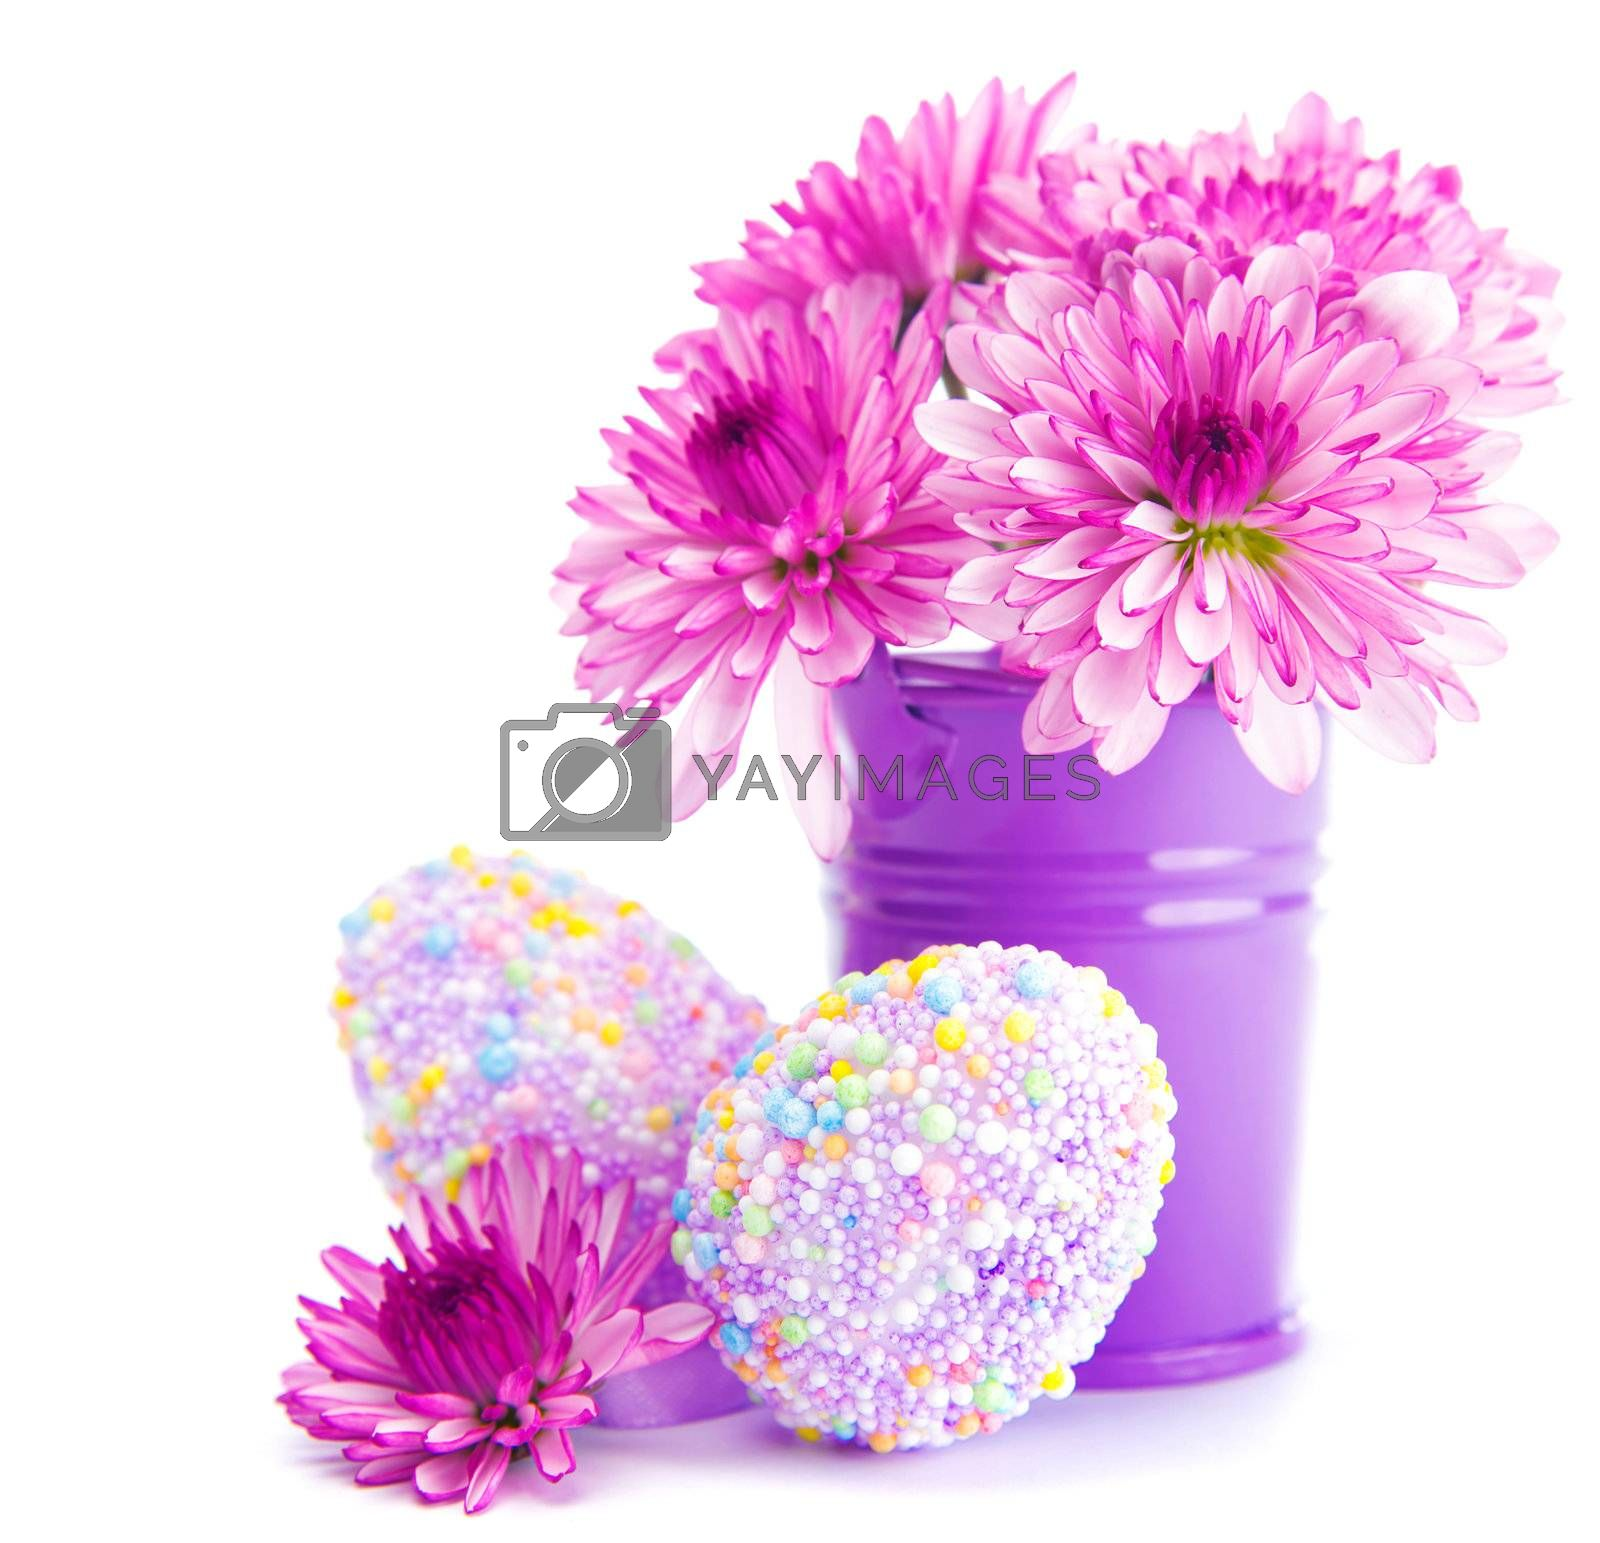 Beautiful festive Easter still life isolated on white background, spring time holiday, colorful eggs with fresh pink flowers bouquet